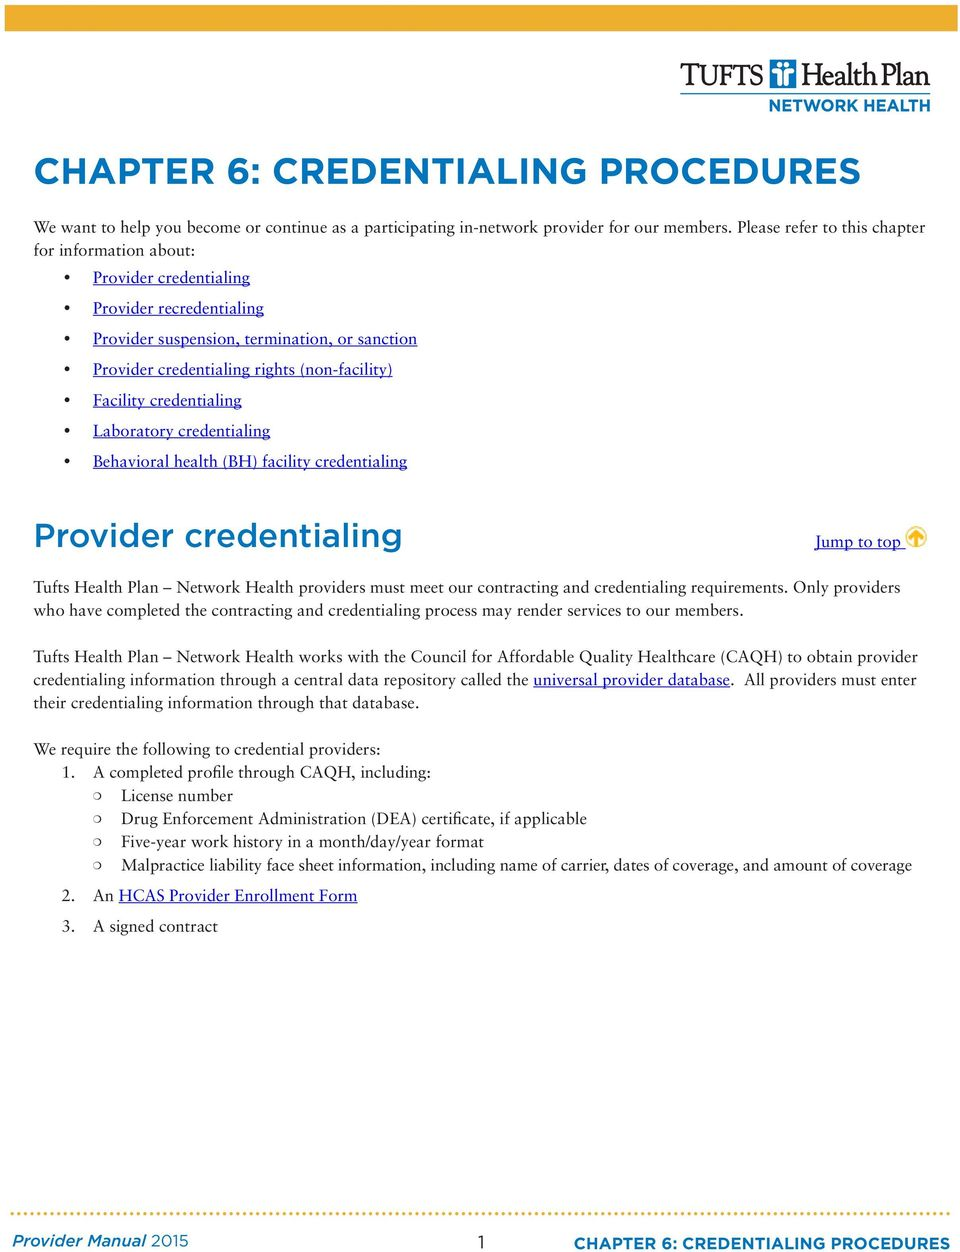 Chapter 6 Credentialing Procedures Pdf